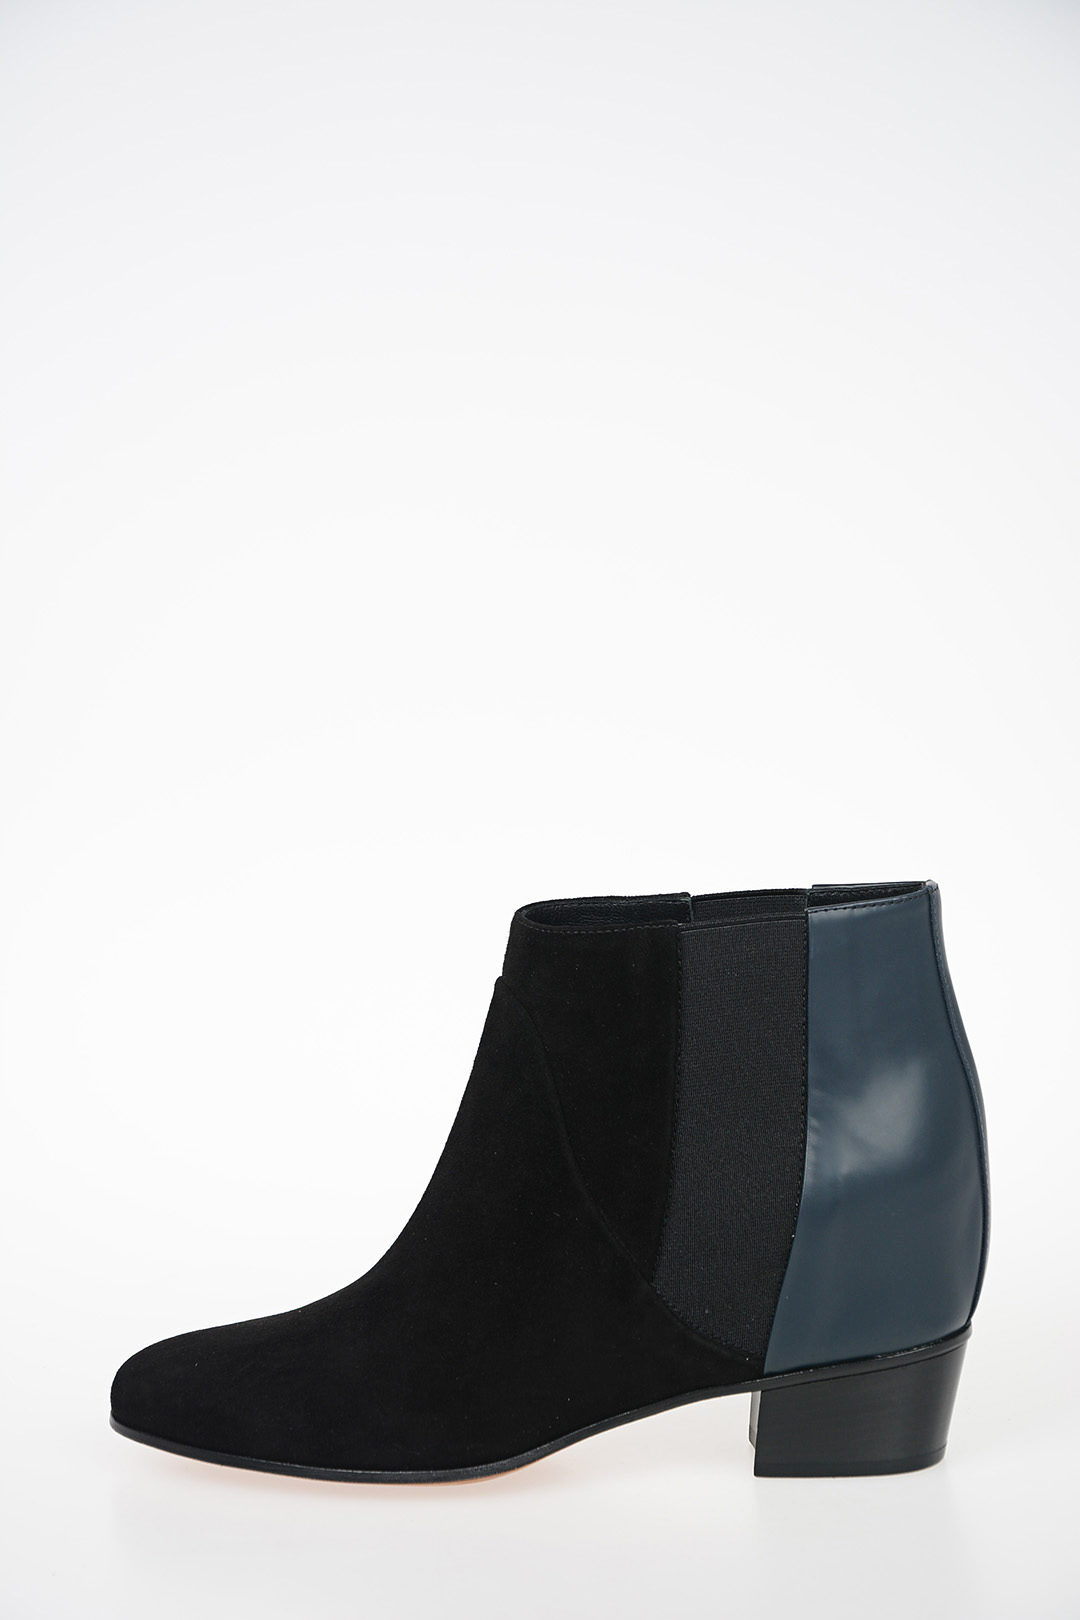 Golden Goose Leather DANA Ankle Boots